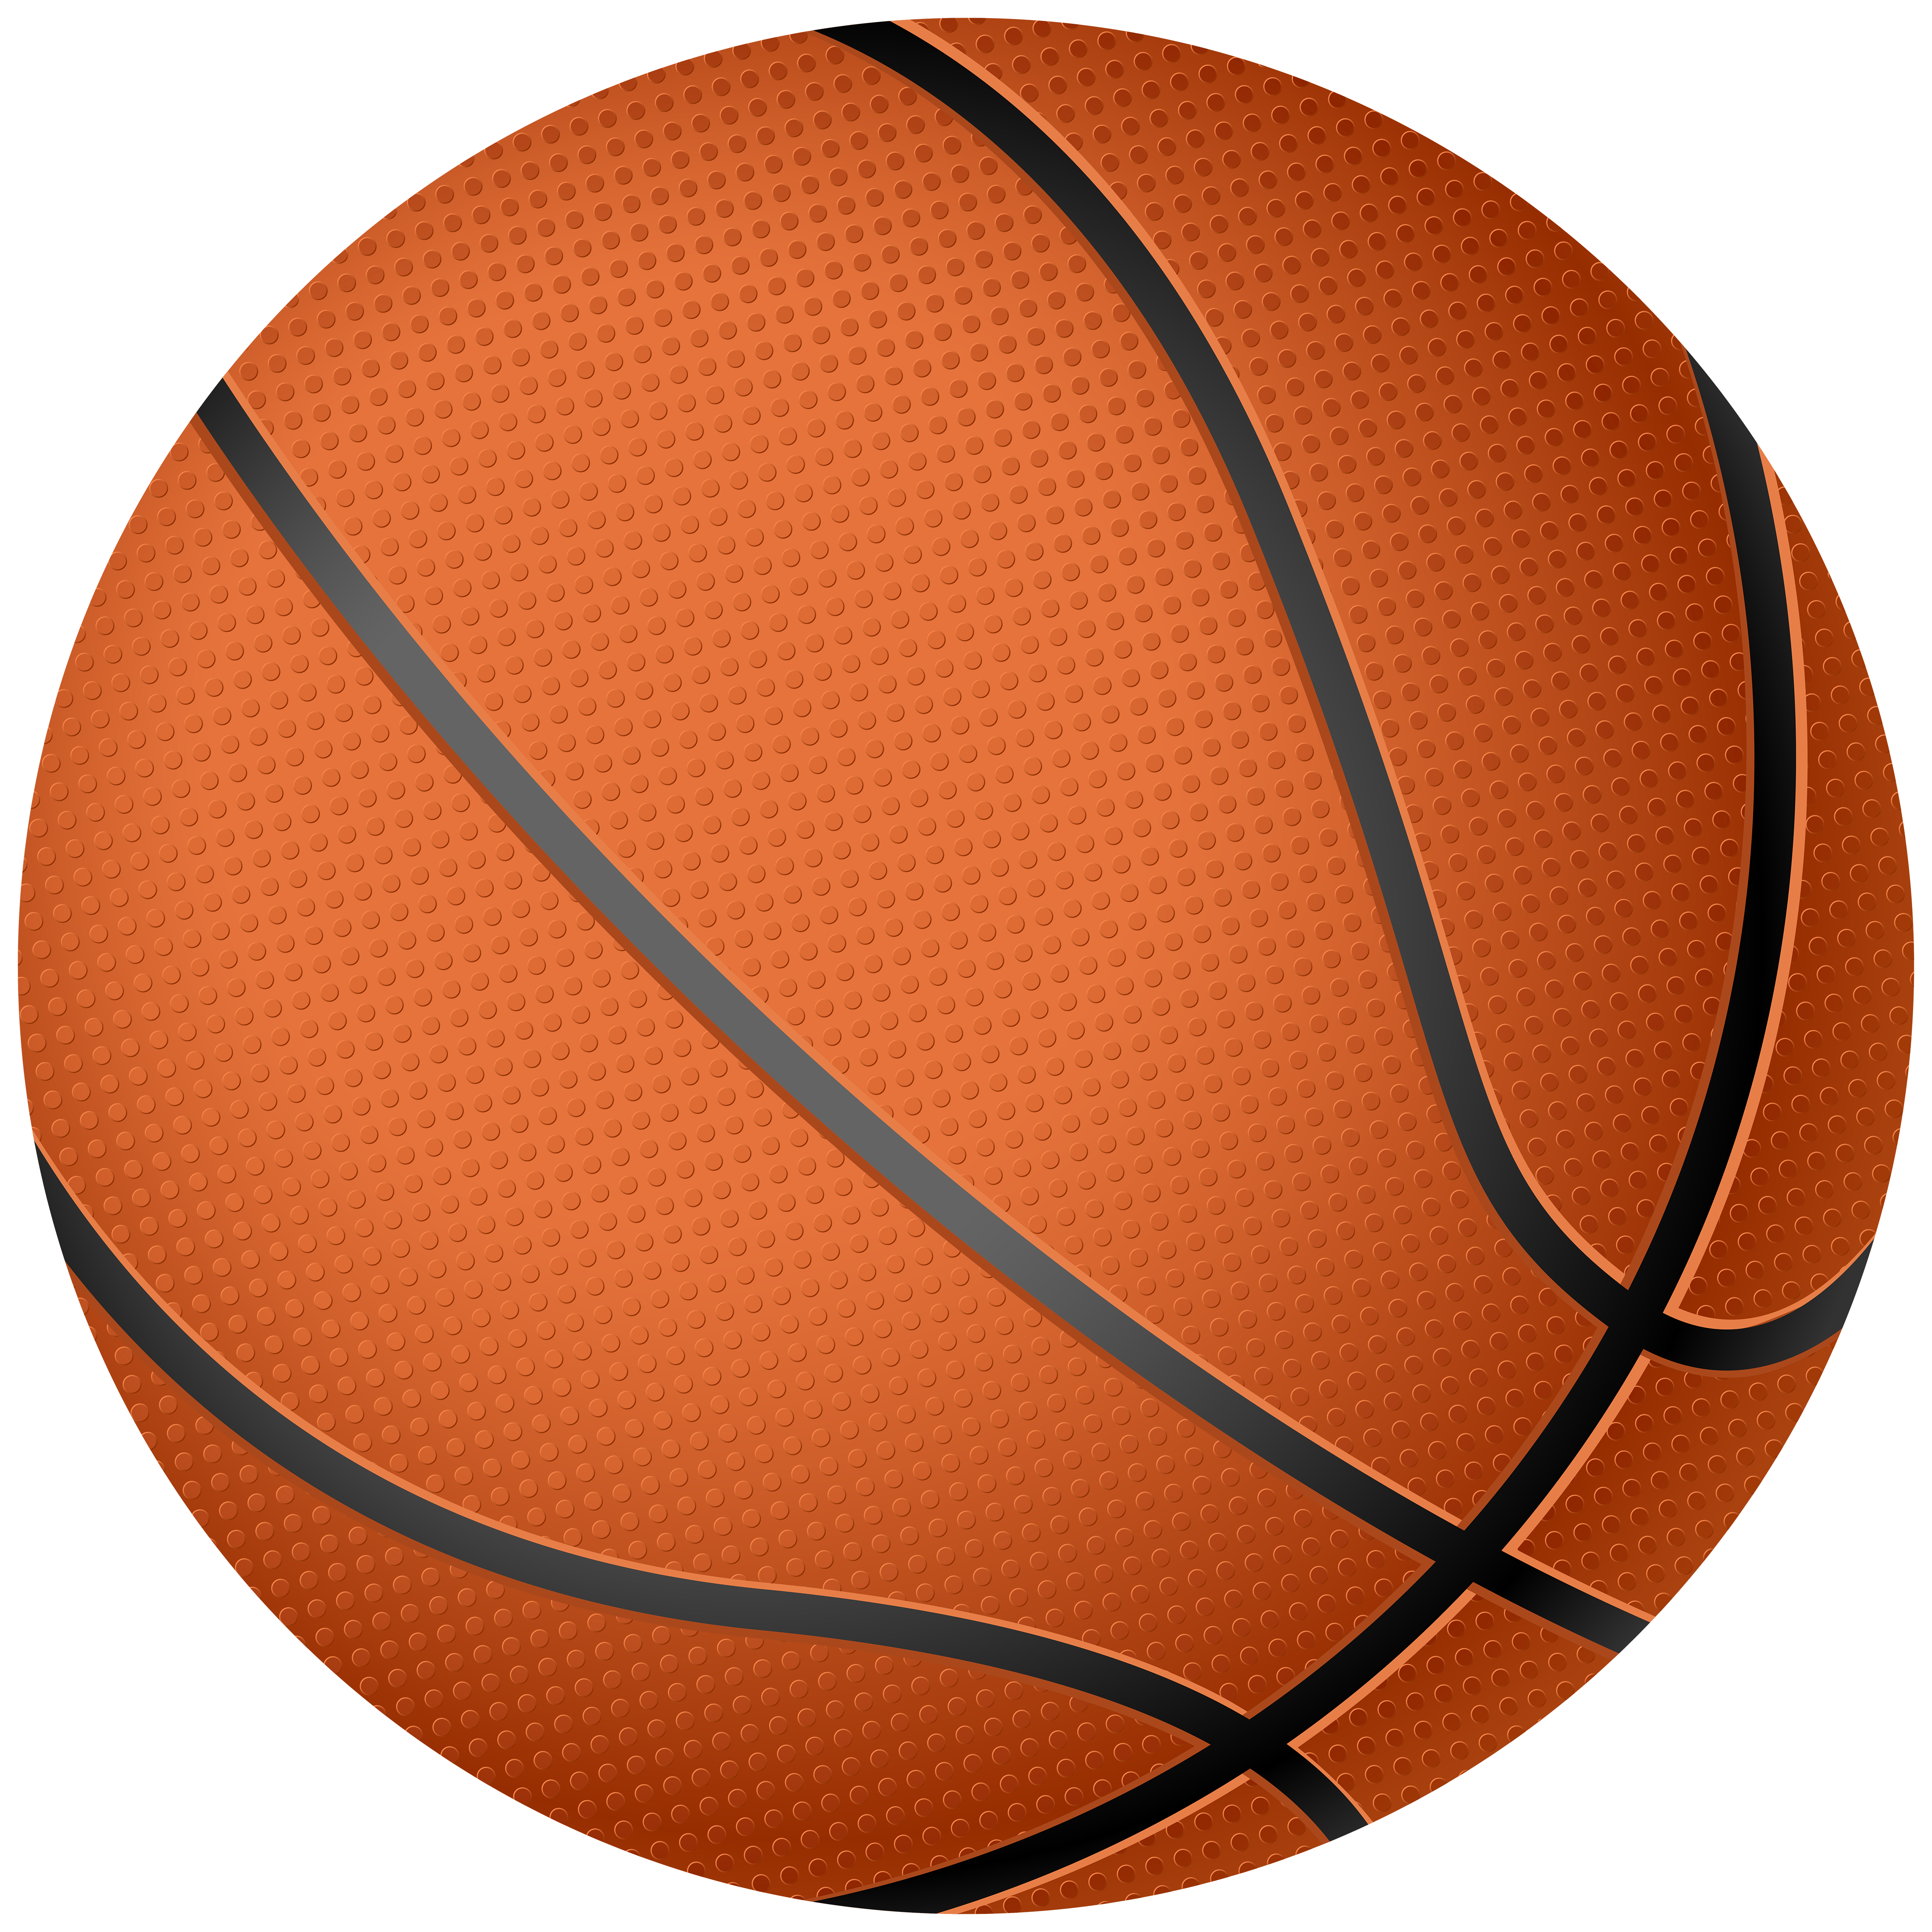 picture free stock Png clip art best. Books clipart basketball.